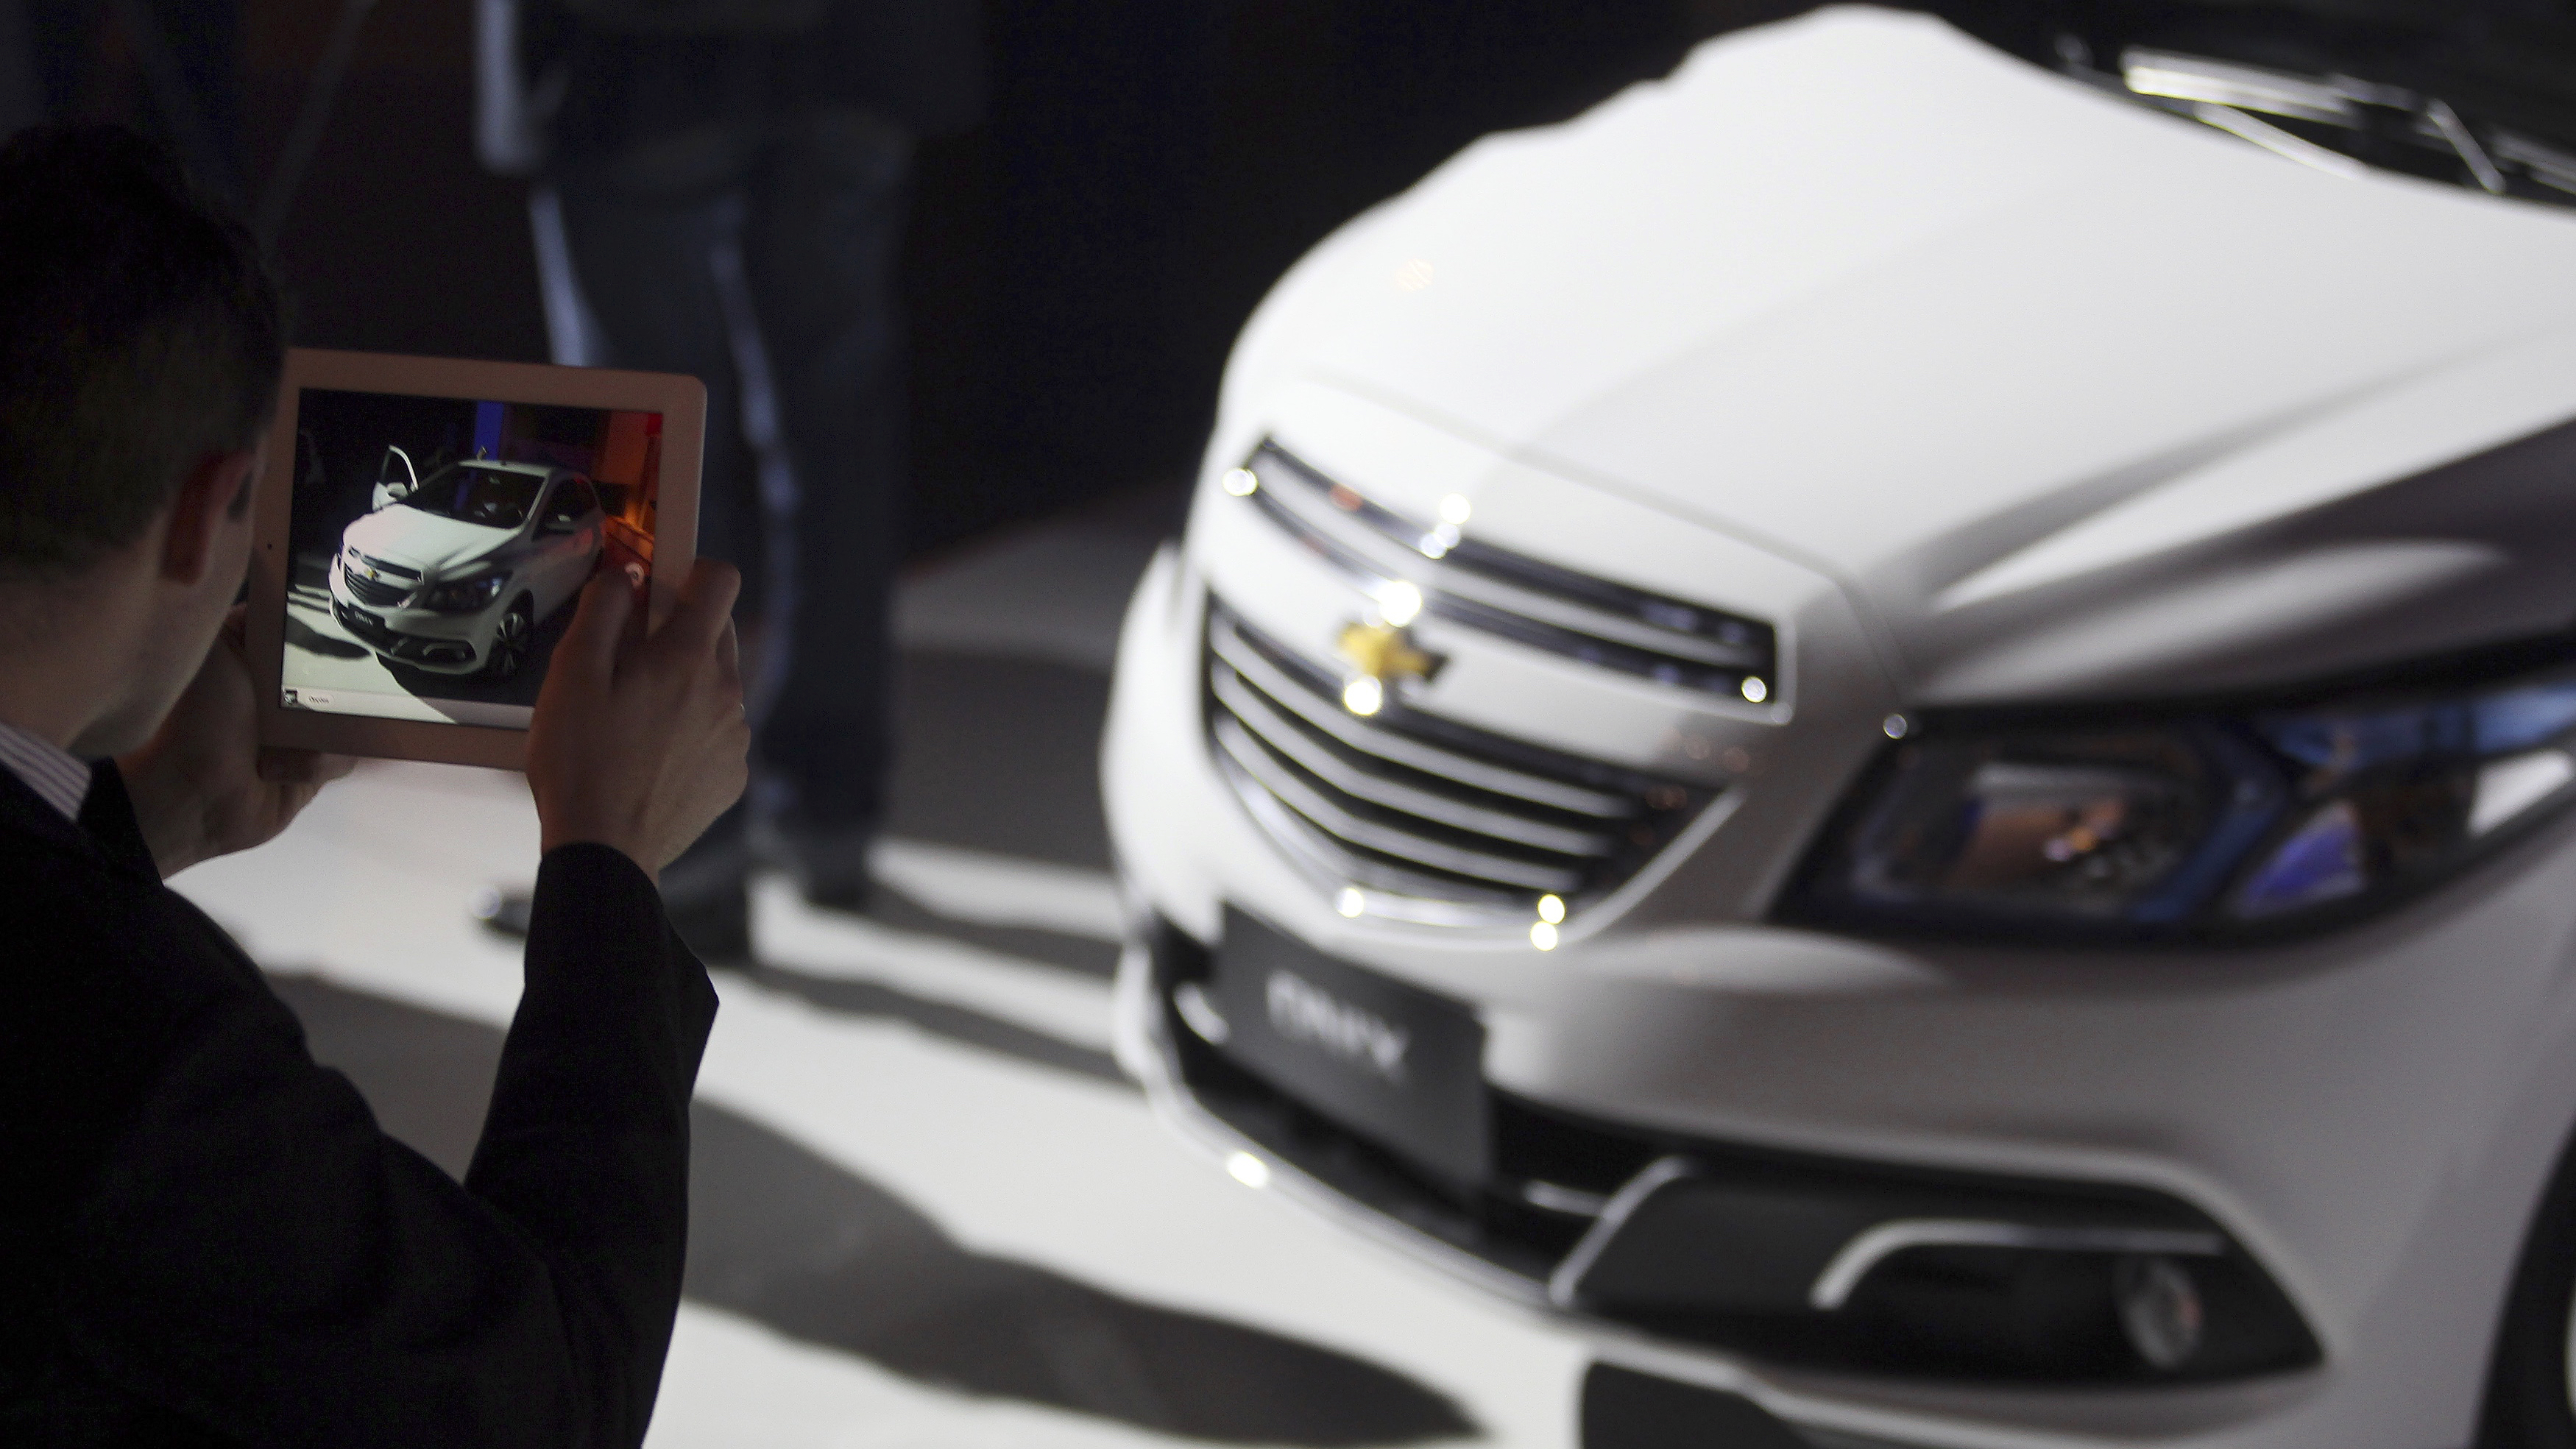 A person takes a photograph of the new Chevrolet Onix during the Chevrolet Onix World Premiere in Sao Paulo October 21, 2012.  REUTERS/Paulo Whitaker  (BRAZIL - Tags: BUSINESS TRANSPORT) - RTR39EW9